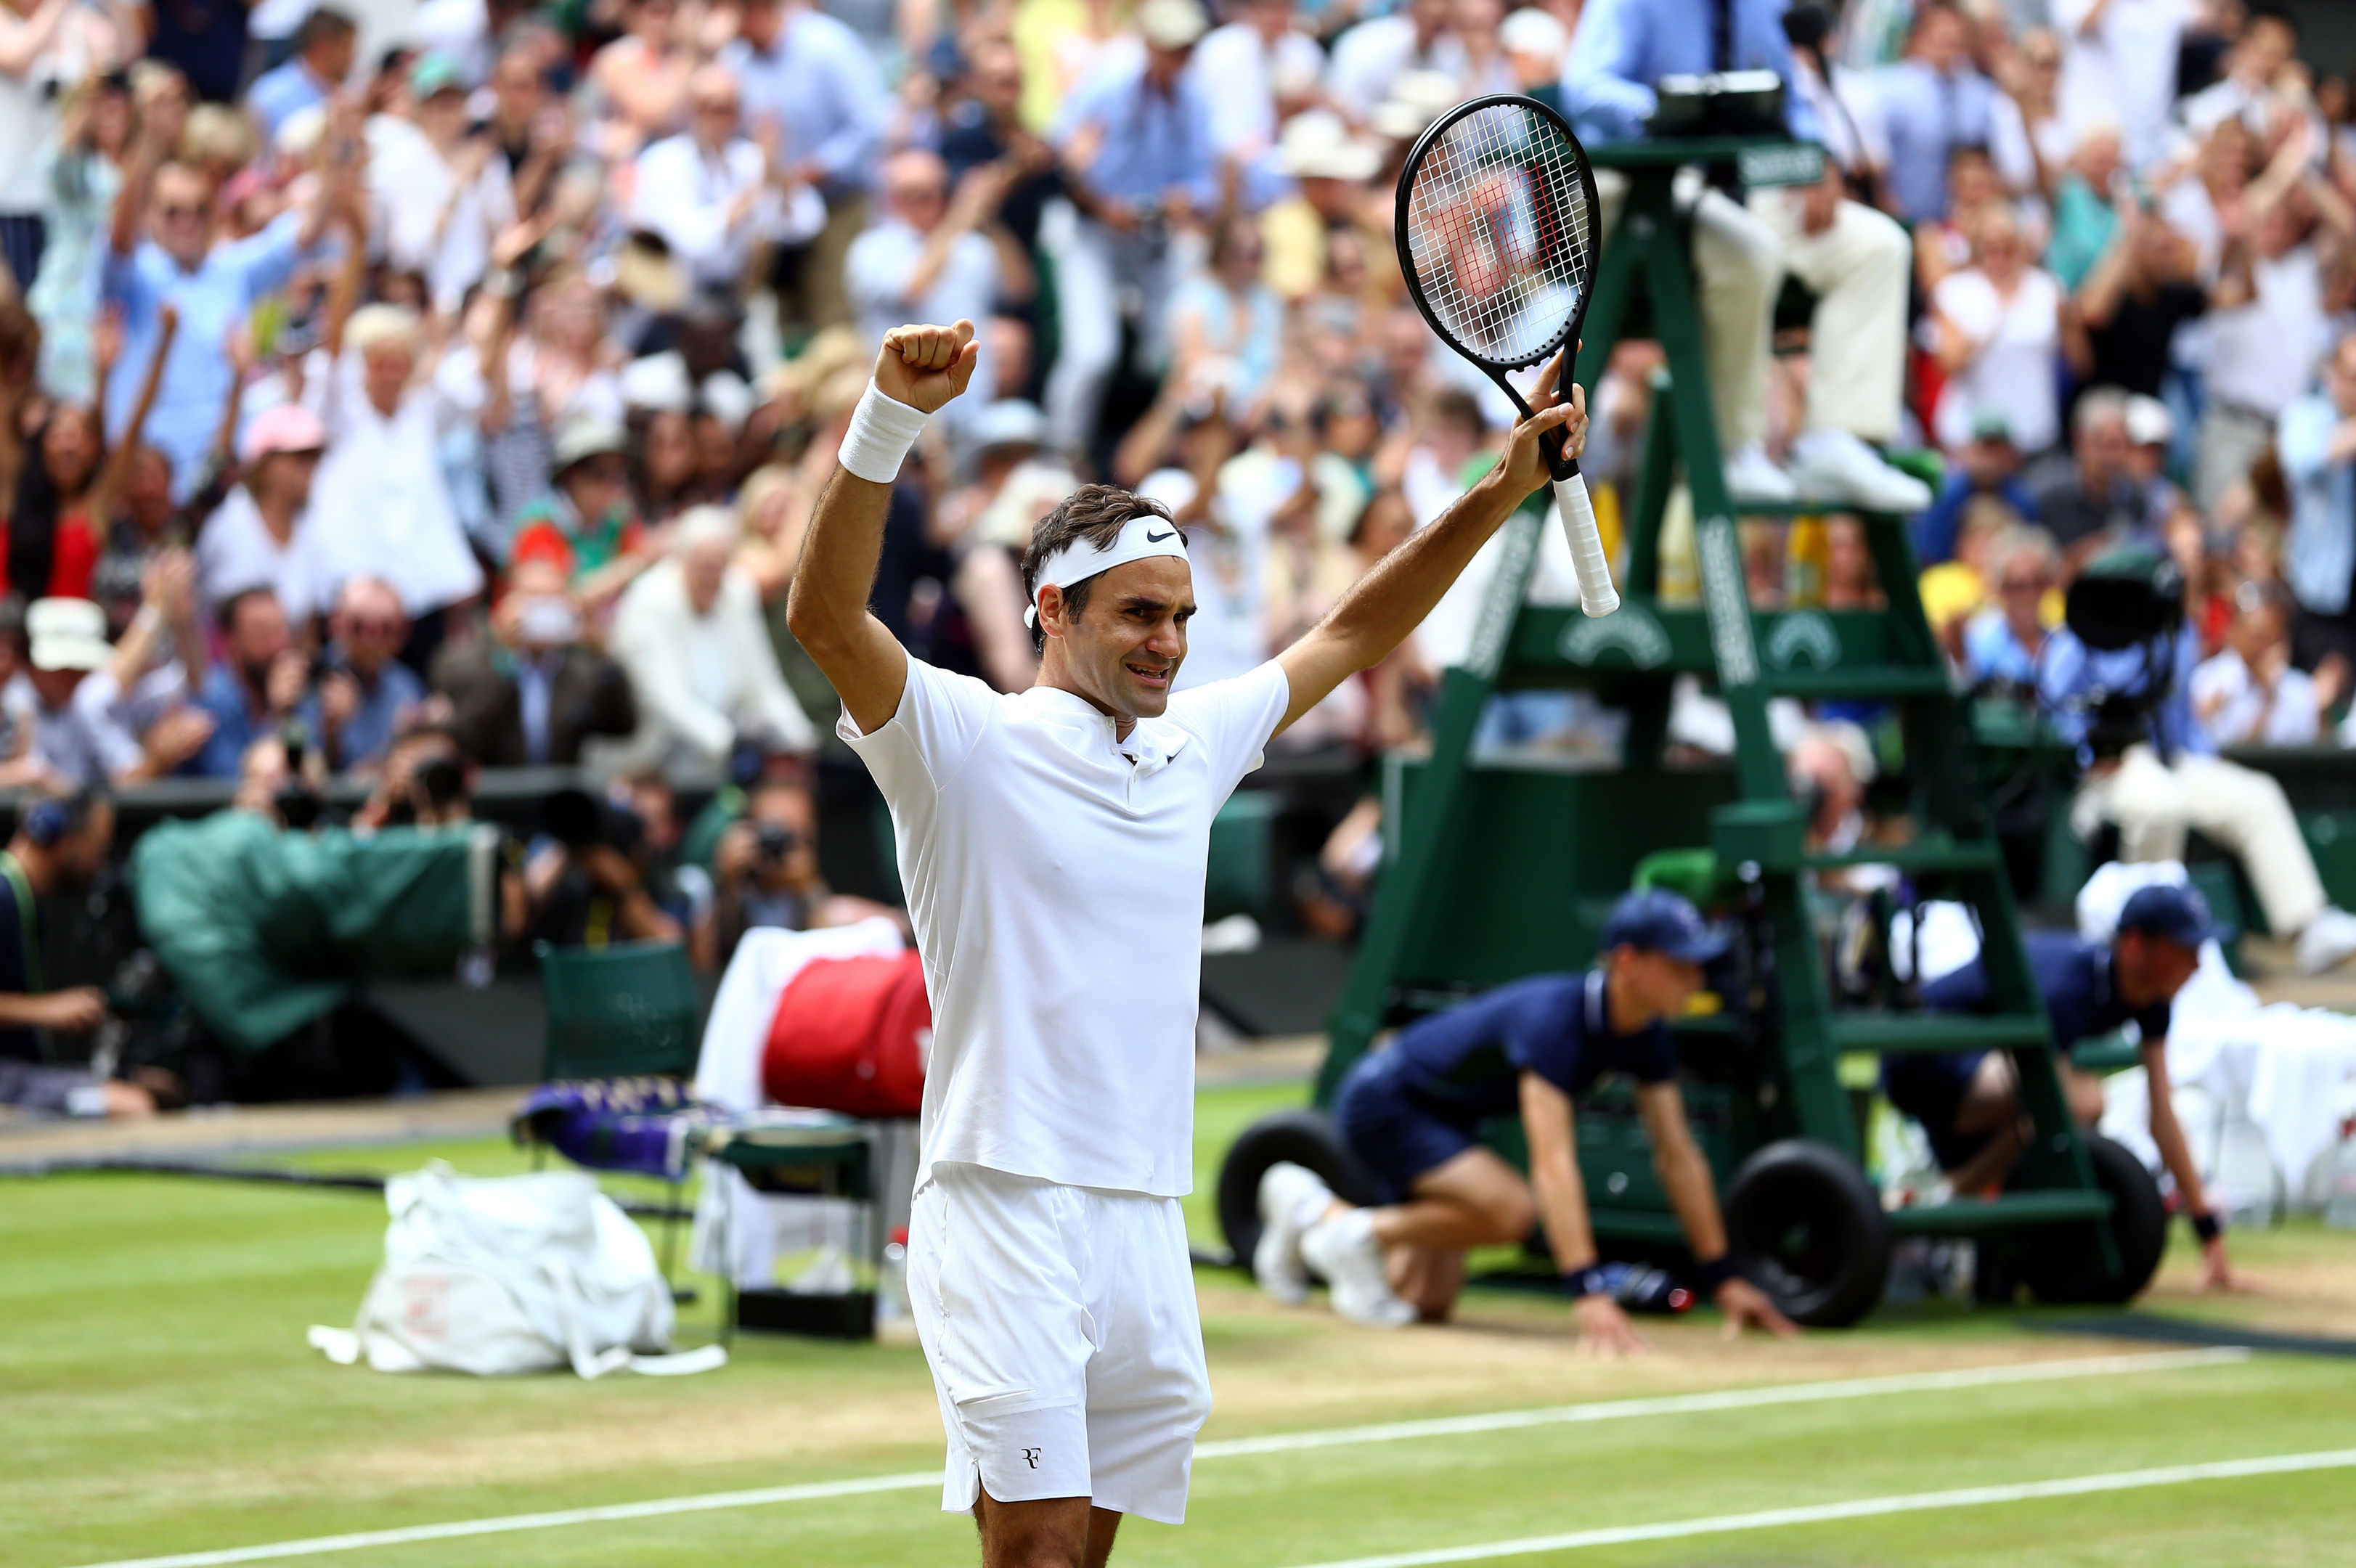 Roger Federer celebrates beating Marin Cilic (Gareth Fuller/PA Wire)